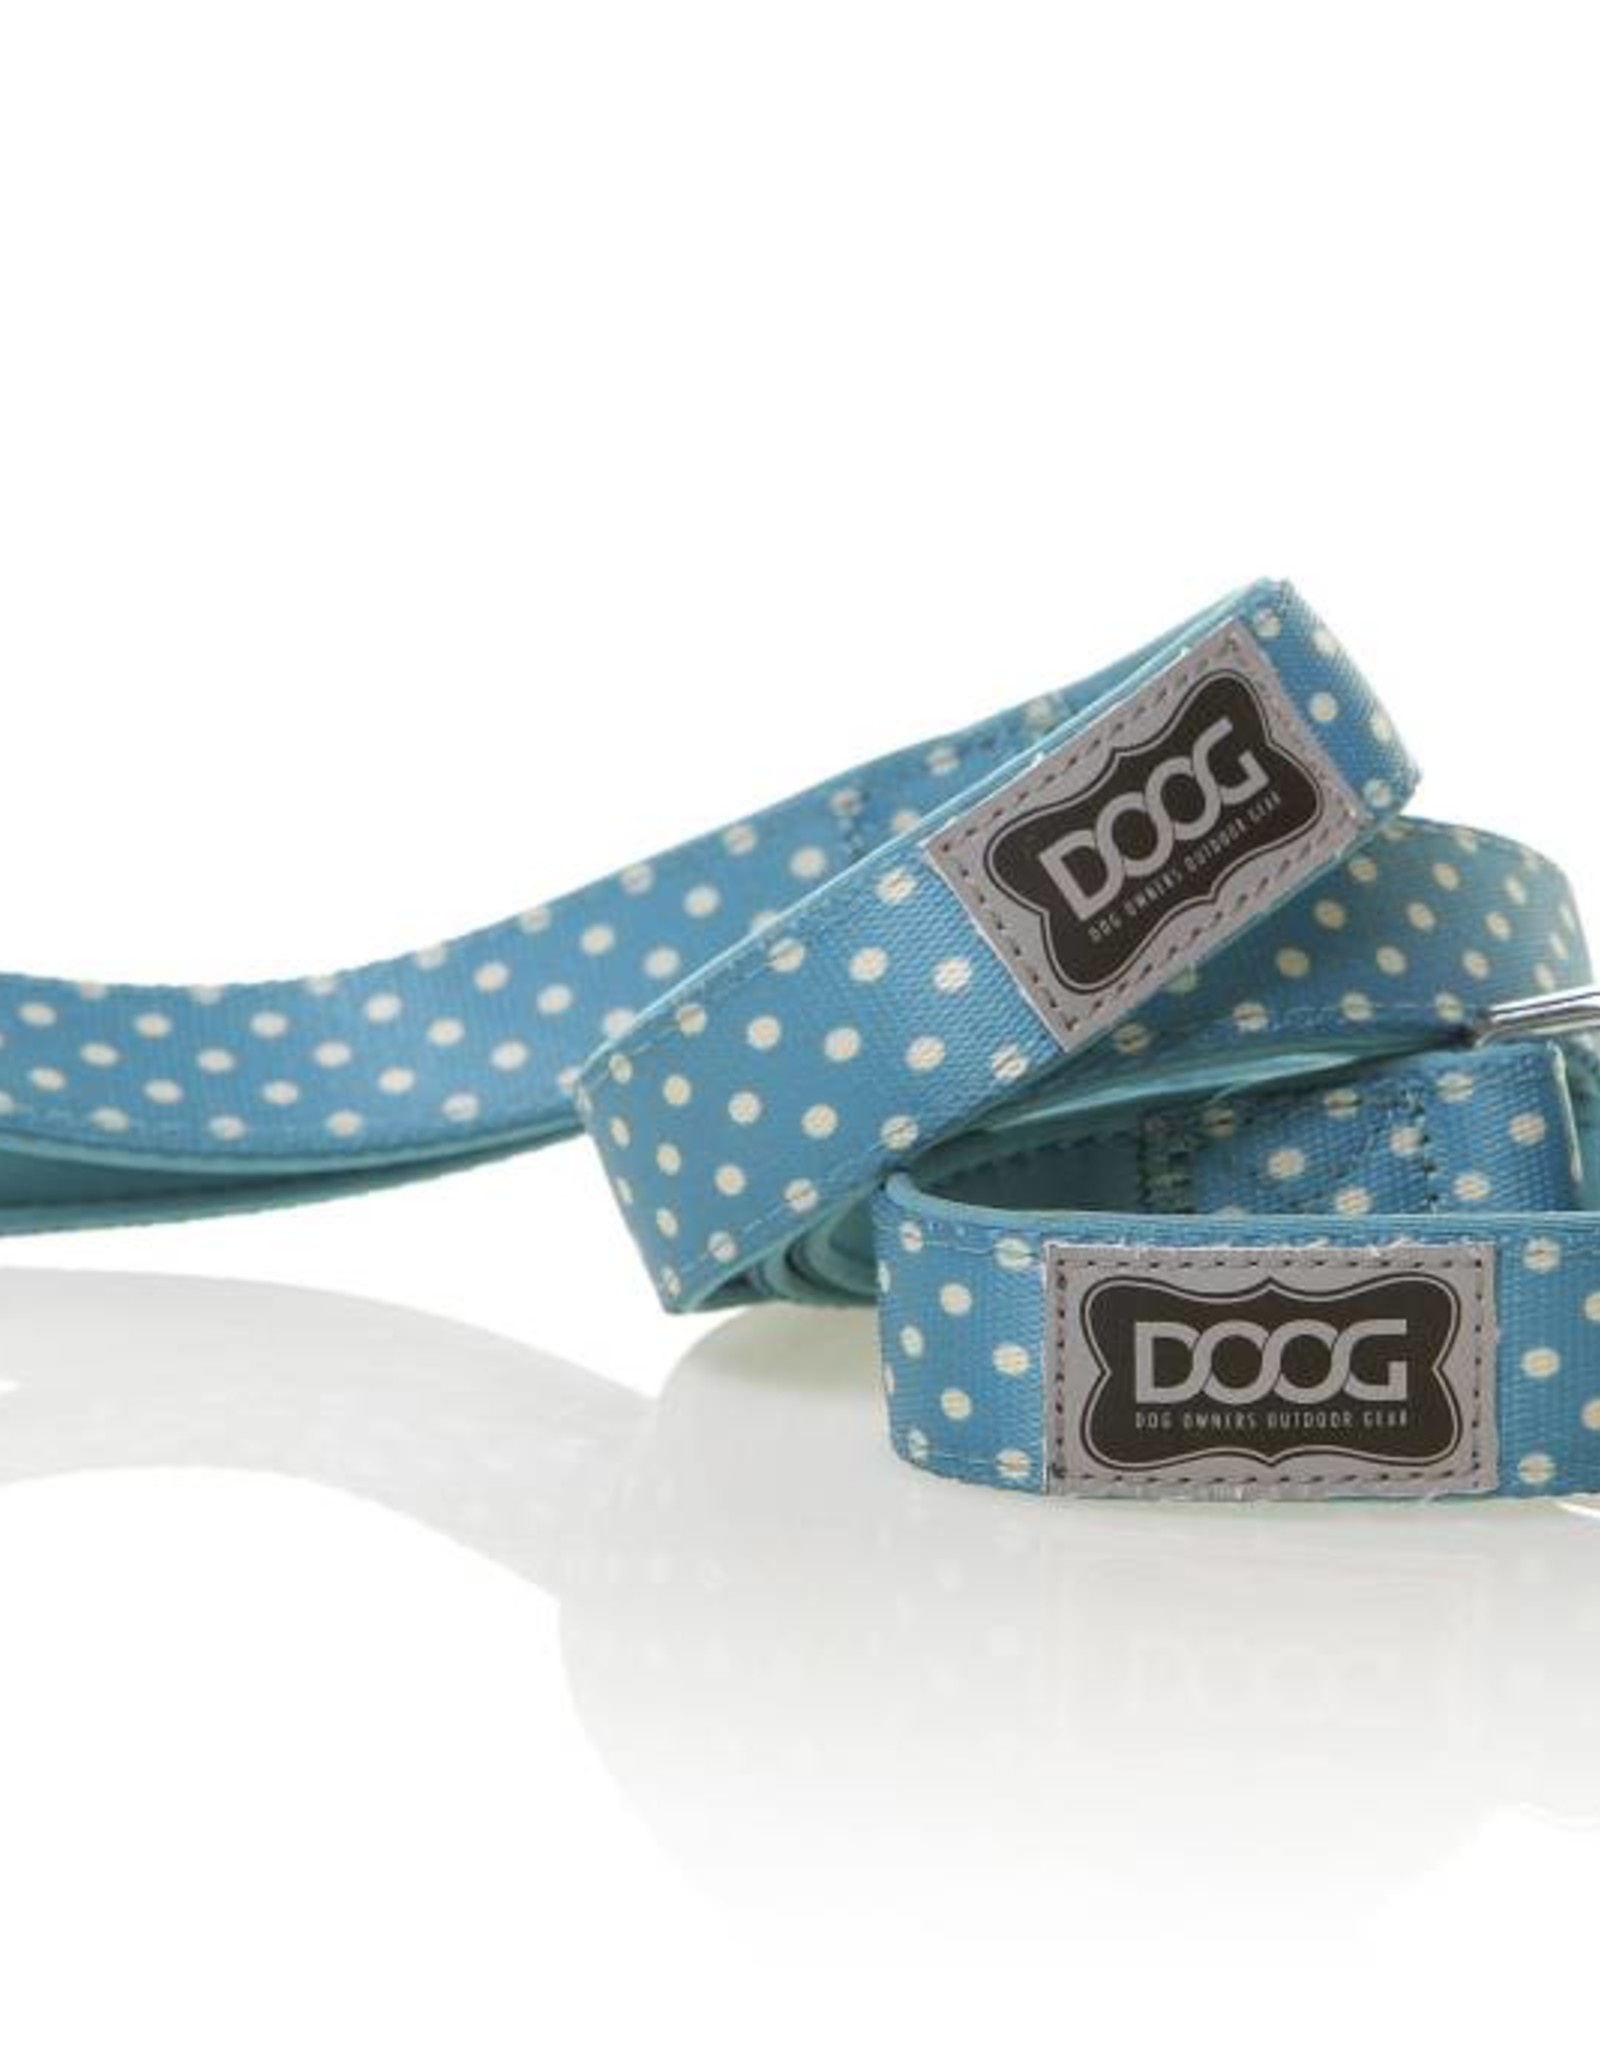 DOOG Doog | Dog Lead - Snoopy